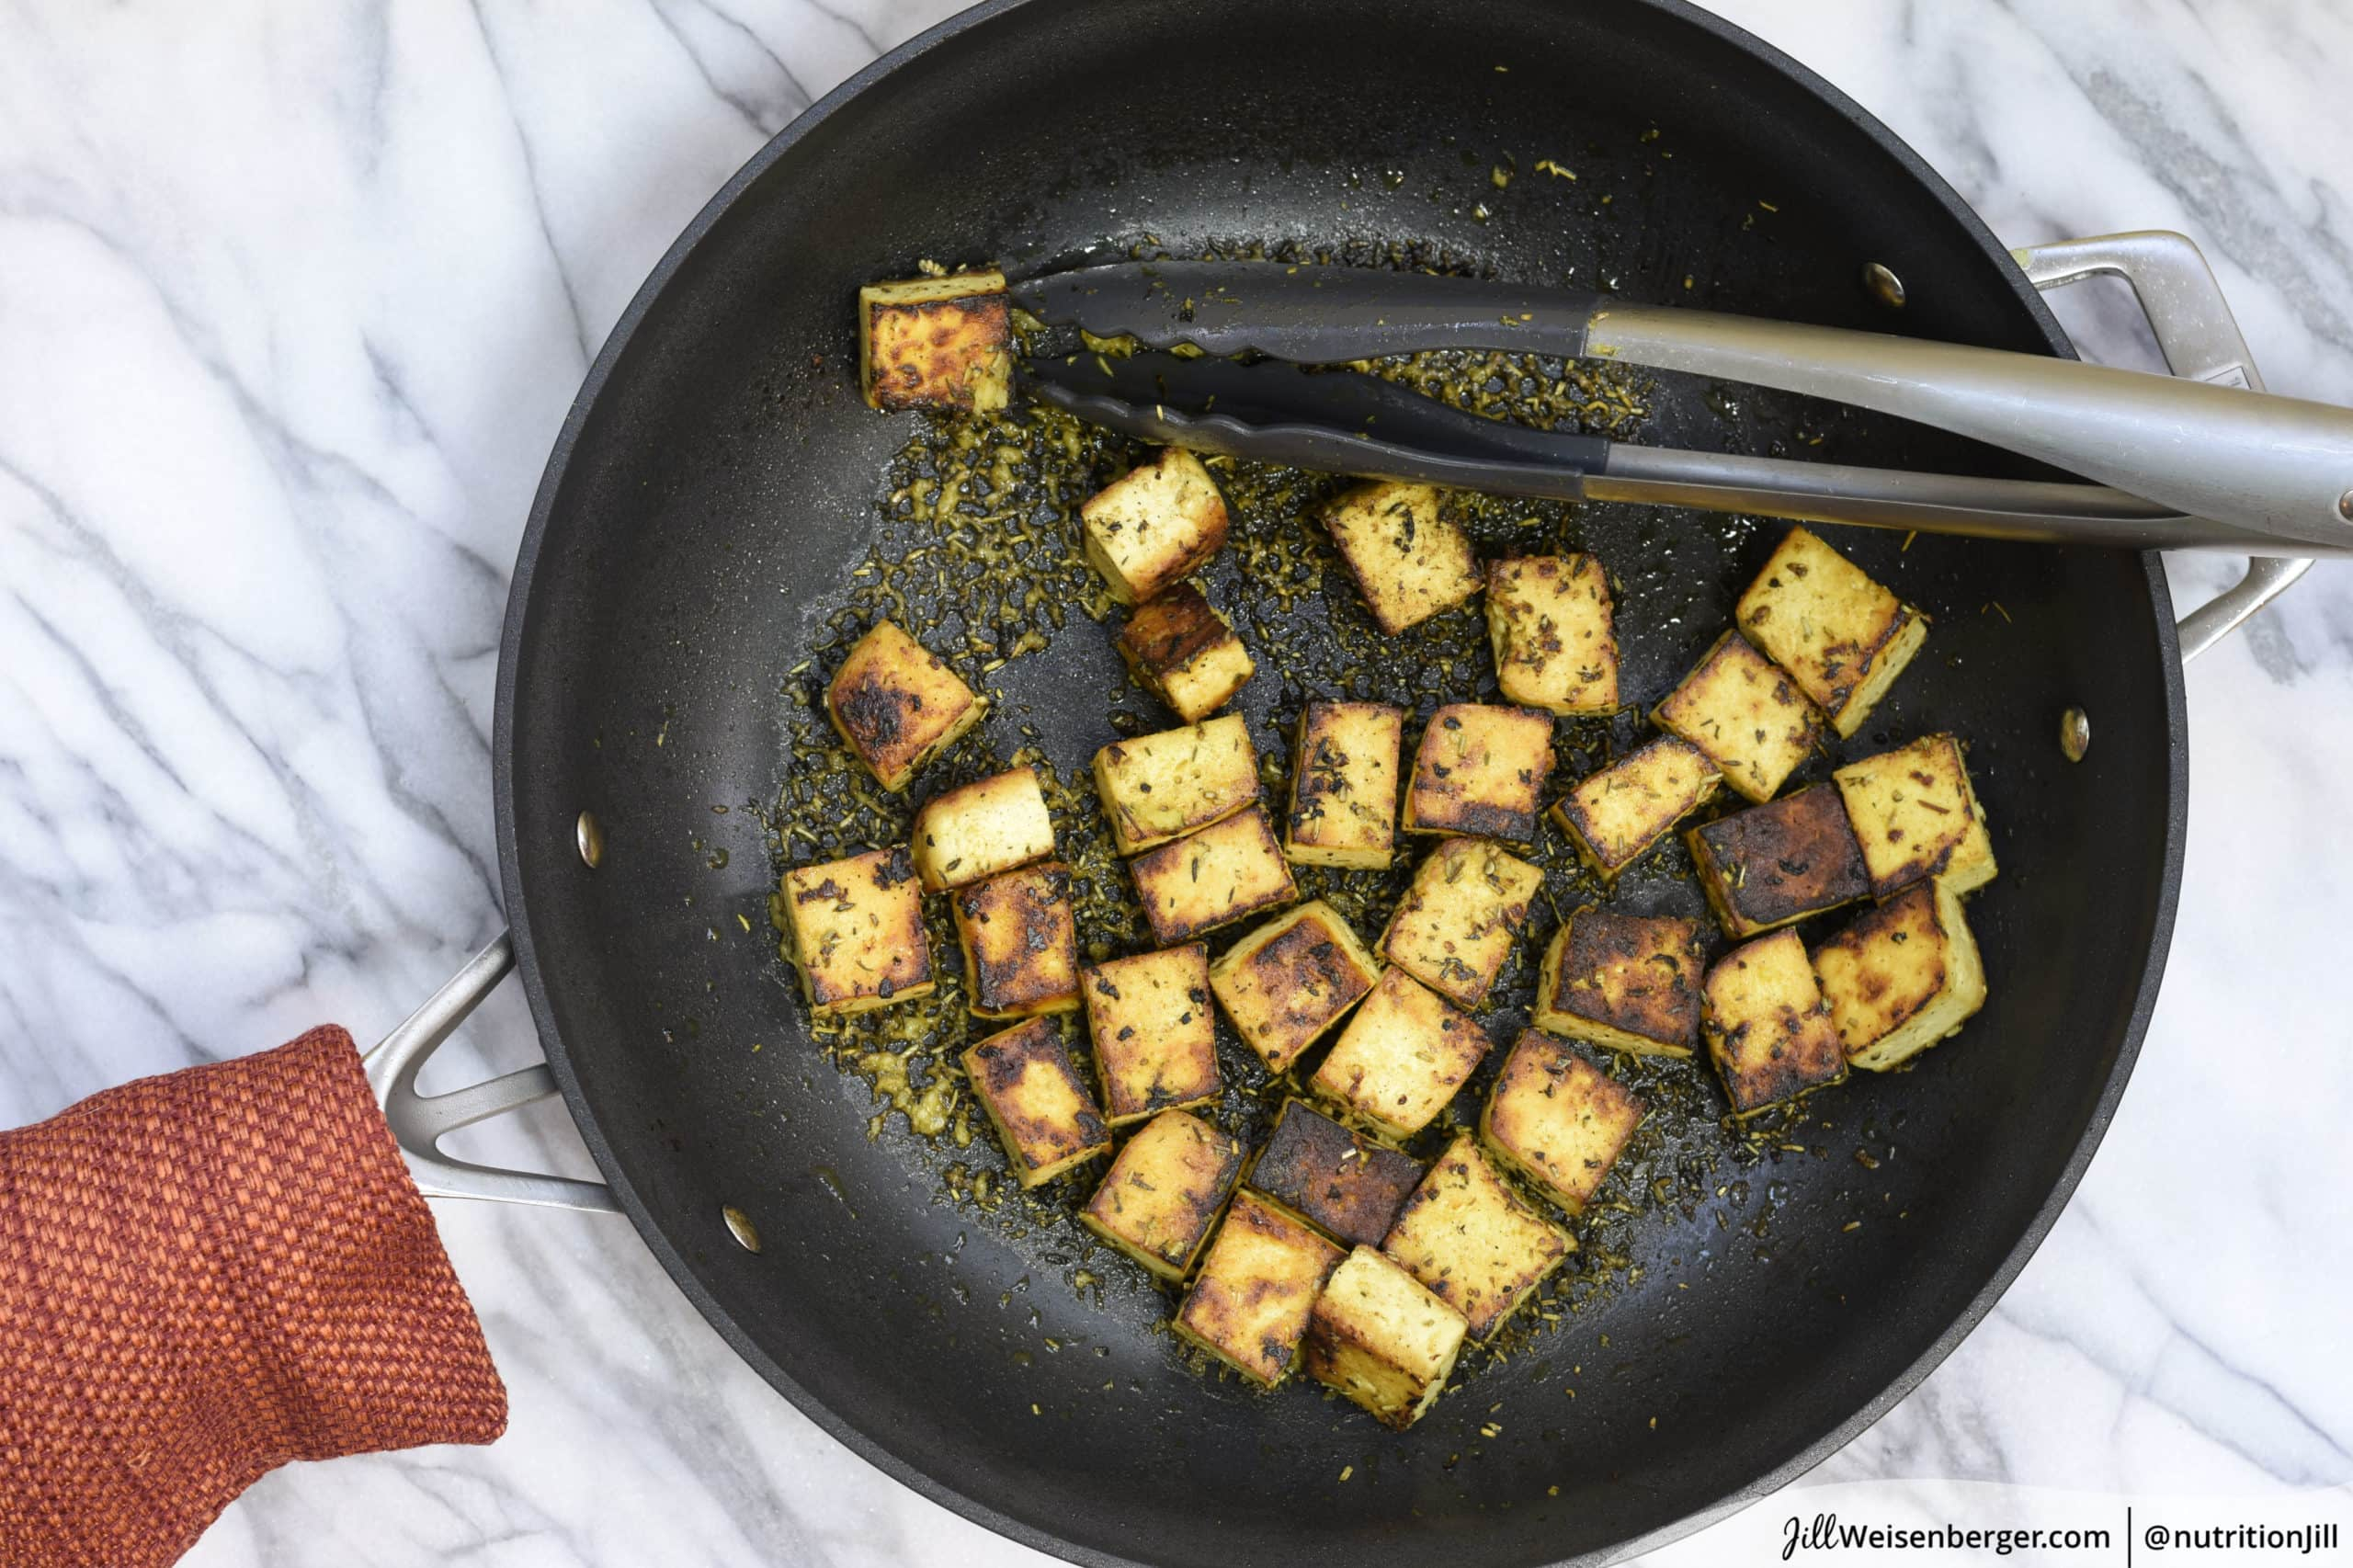 marinated tofu cooked in a skillet